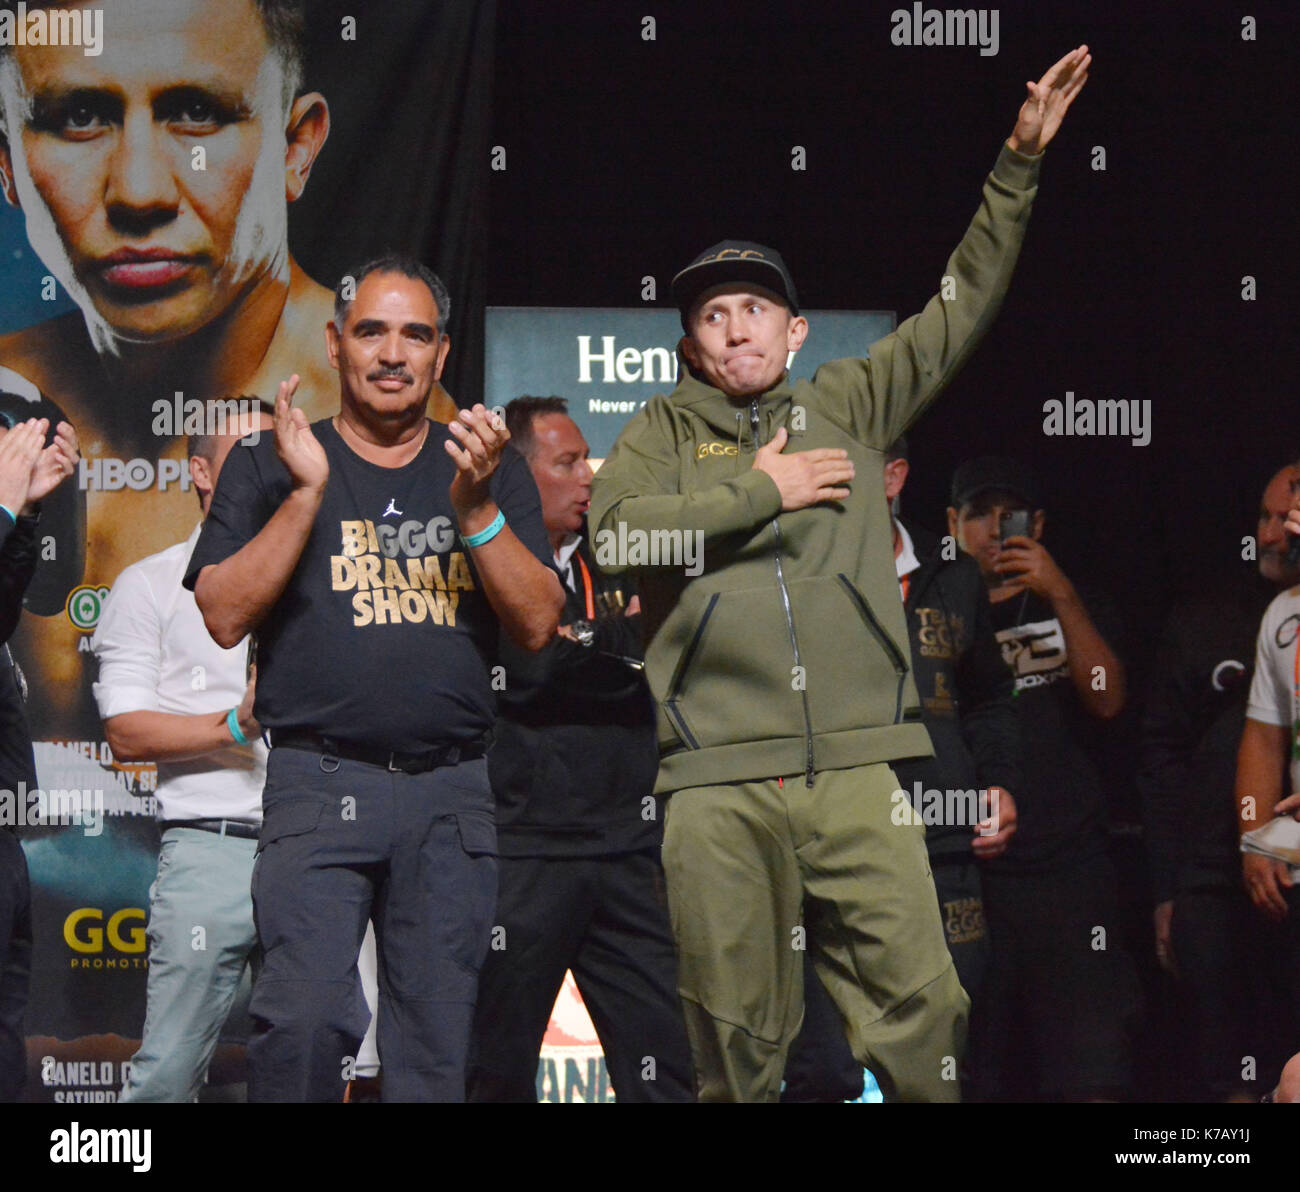 Las Vegas, Nevada, USA. 15th Sep, 2017. WBA, WBO, IBF and IBO Unified Middleweight Boxing champion Gennady Golovkin attends the weigh in ceremony for his championship bout against Canelo Alvarez on September14, 2017 at the MGM Grand Garden Arena in Las Vegas, Nevada Credit: Marcel Thomas/ZUMA Wire/Alamy Live News - Stock Image